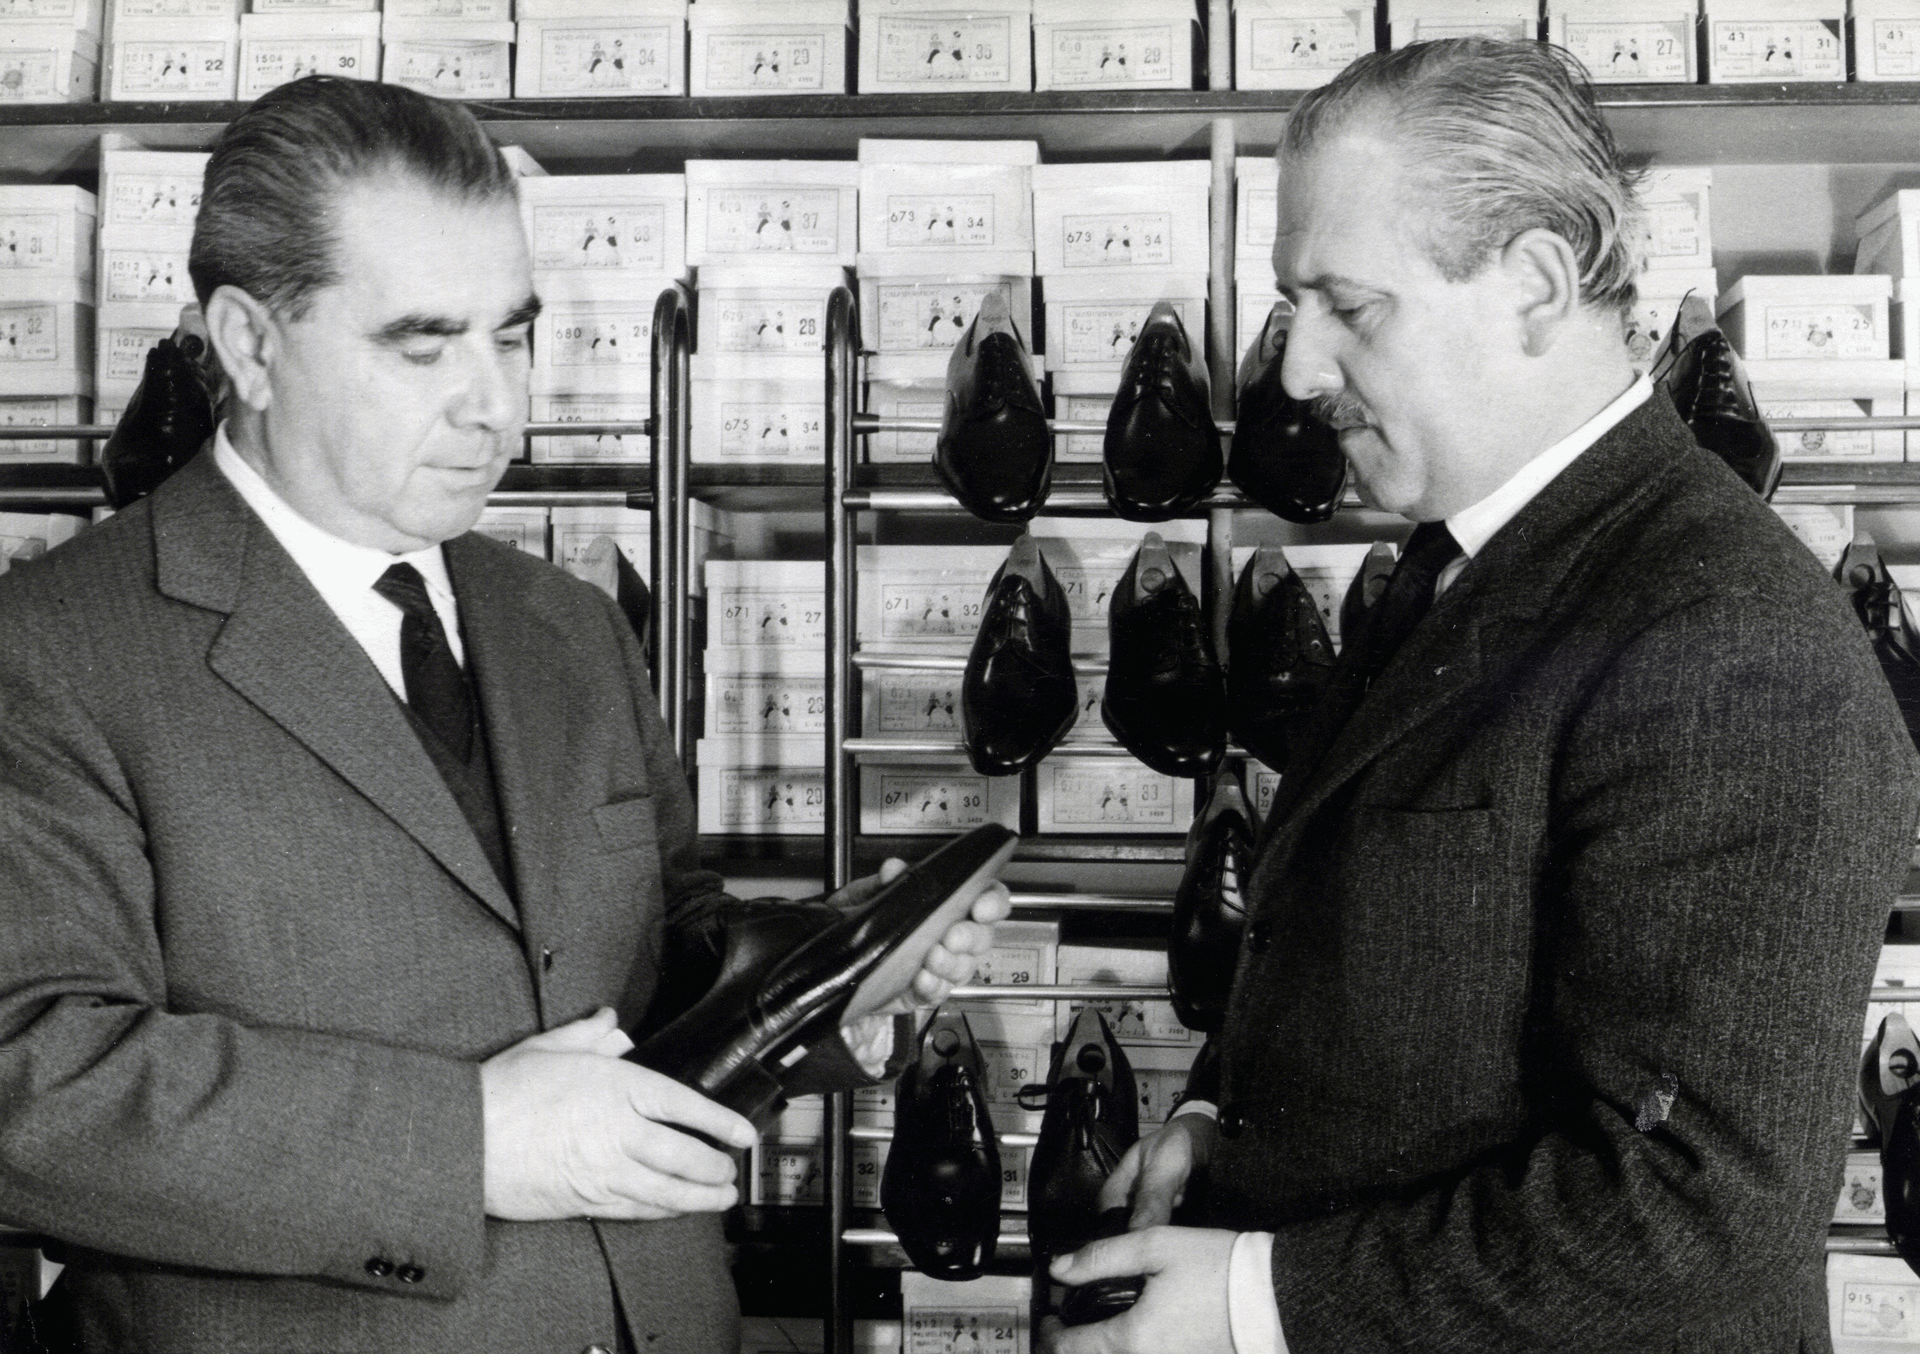 The beginning of men's shoes